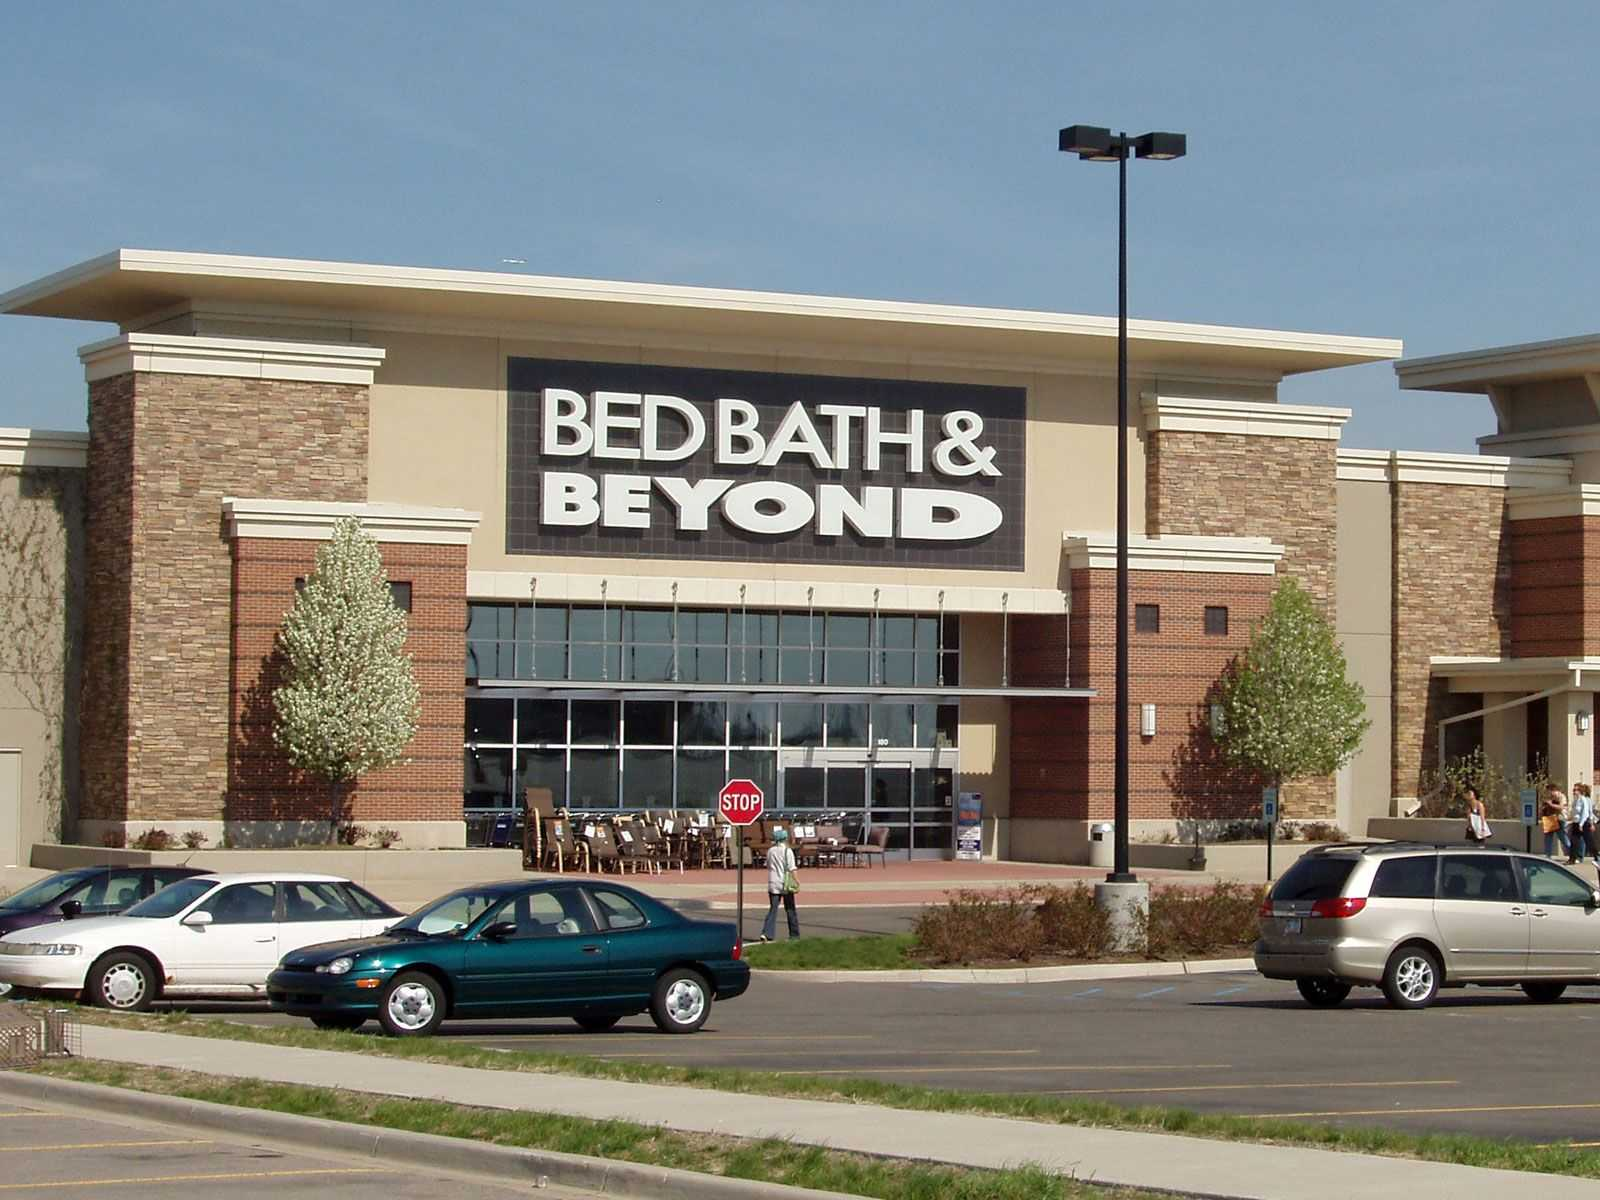 bed bath and beyond near me, bed bath and beyond locations